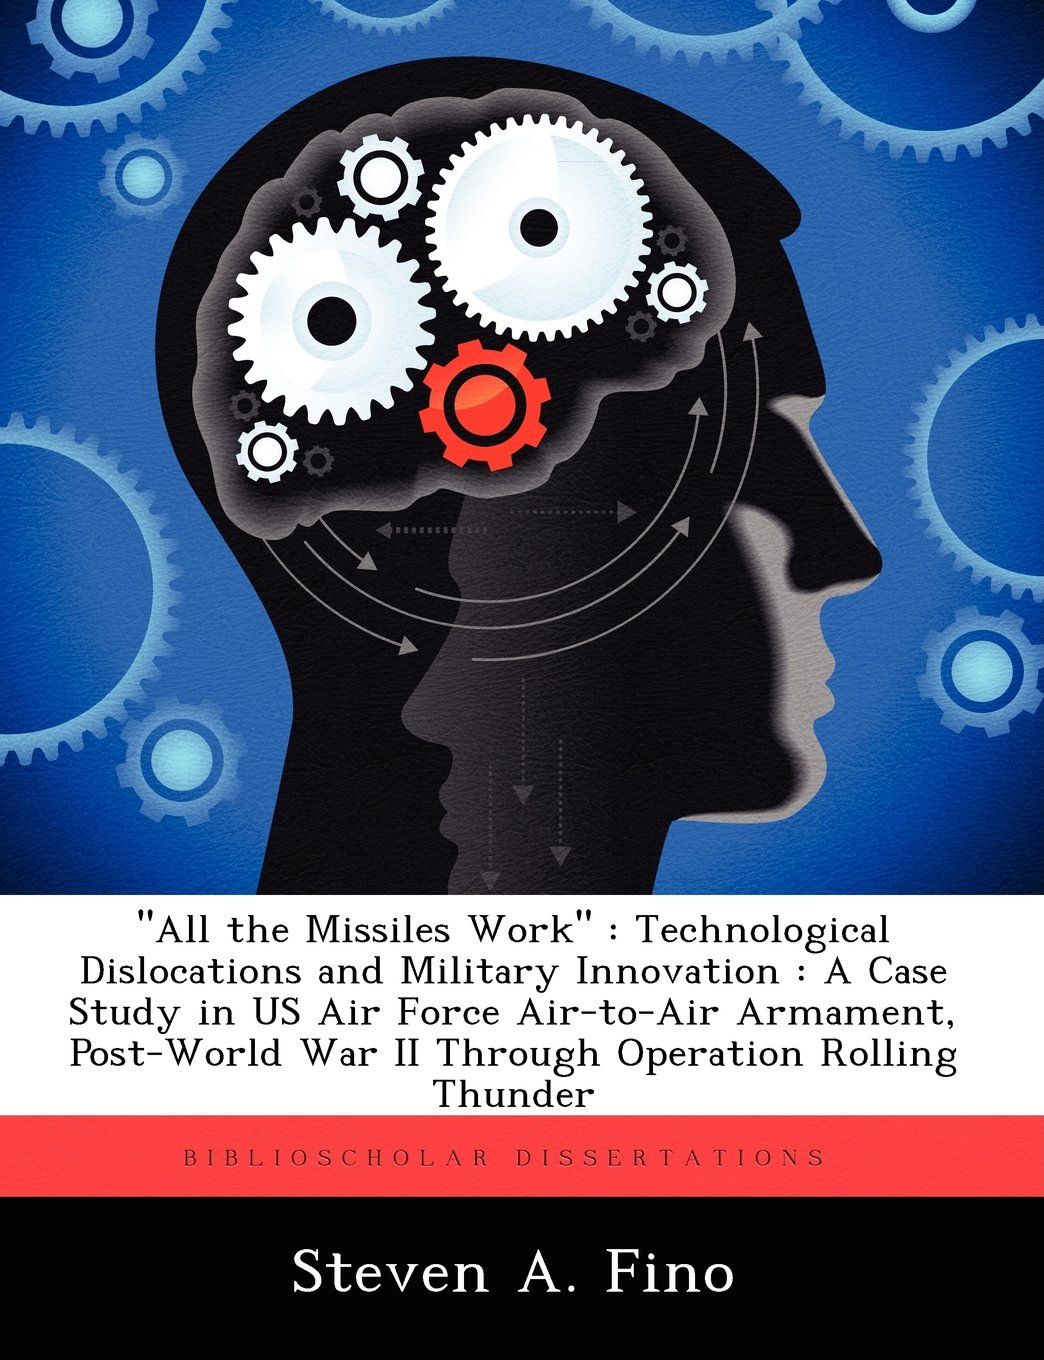 Download All the Missiles Work: Technological Dislocations and Military Innovation : A Case Study in US Air Force Air-to-Air Armament, Post-World War II Through Operation Rolling Thunder pdf epub